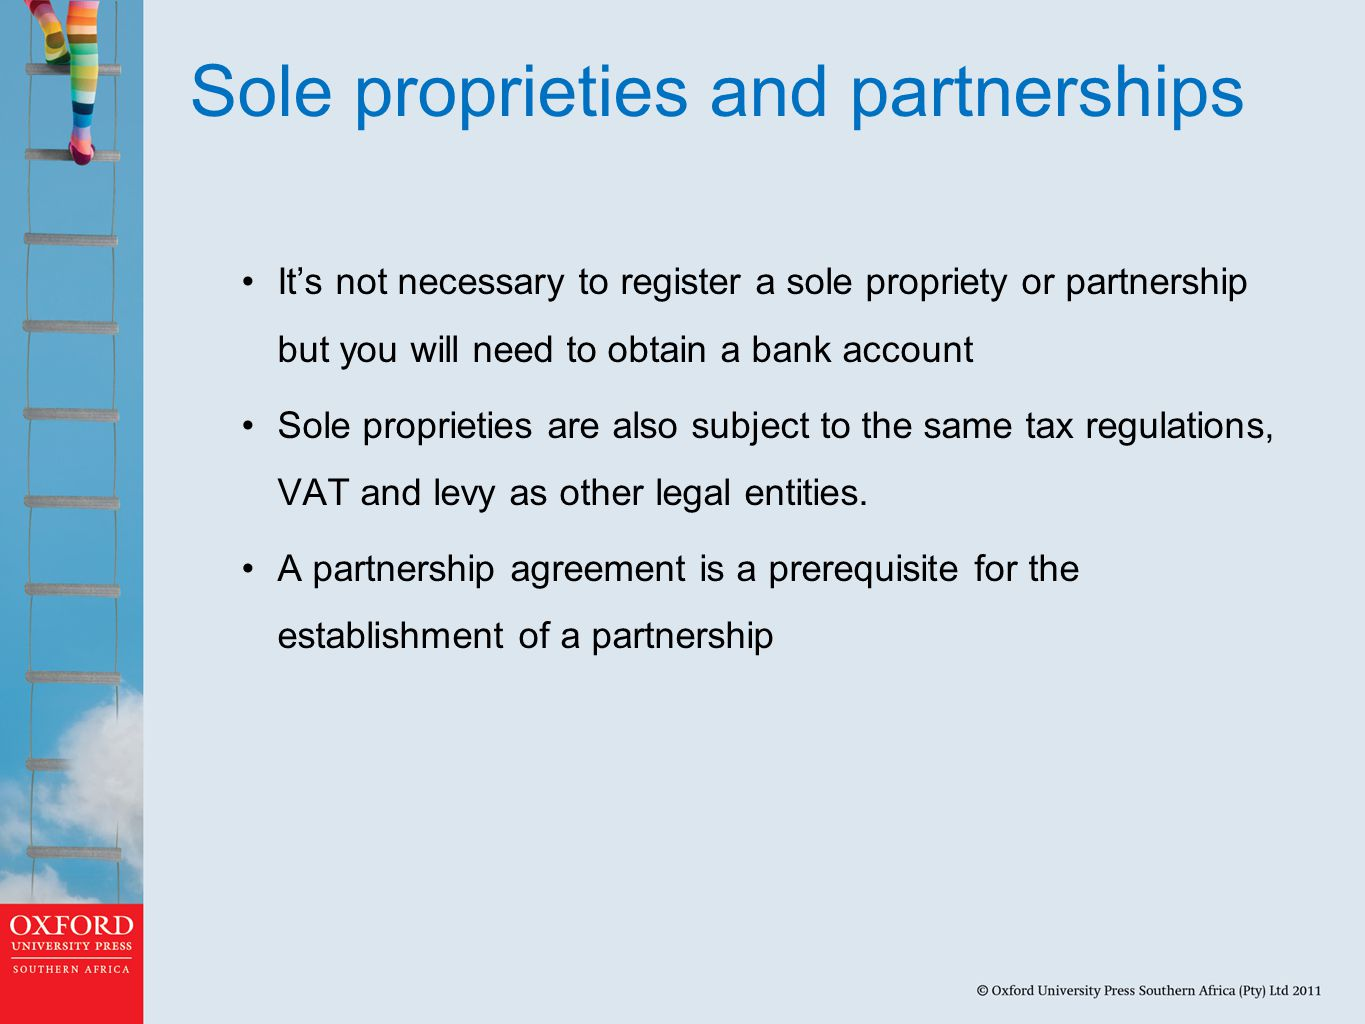 Sole proprieties and partnerships It's not necessary to register a sole propriety or partnership but you will need to obtain a bank account Sole proprieties are also subject to the same tax regulations, VAT and levy as other legal entities.